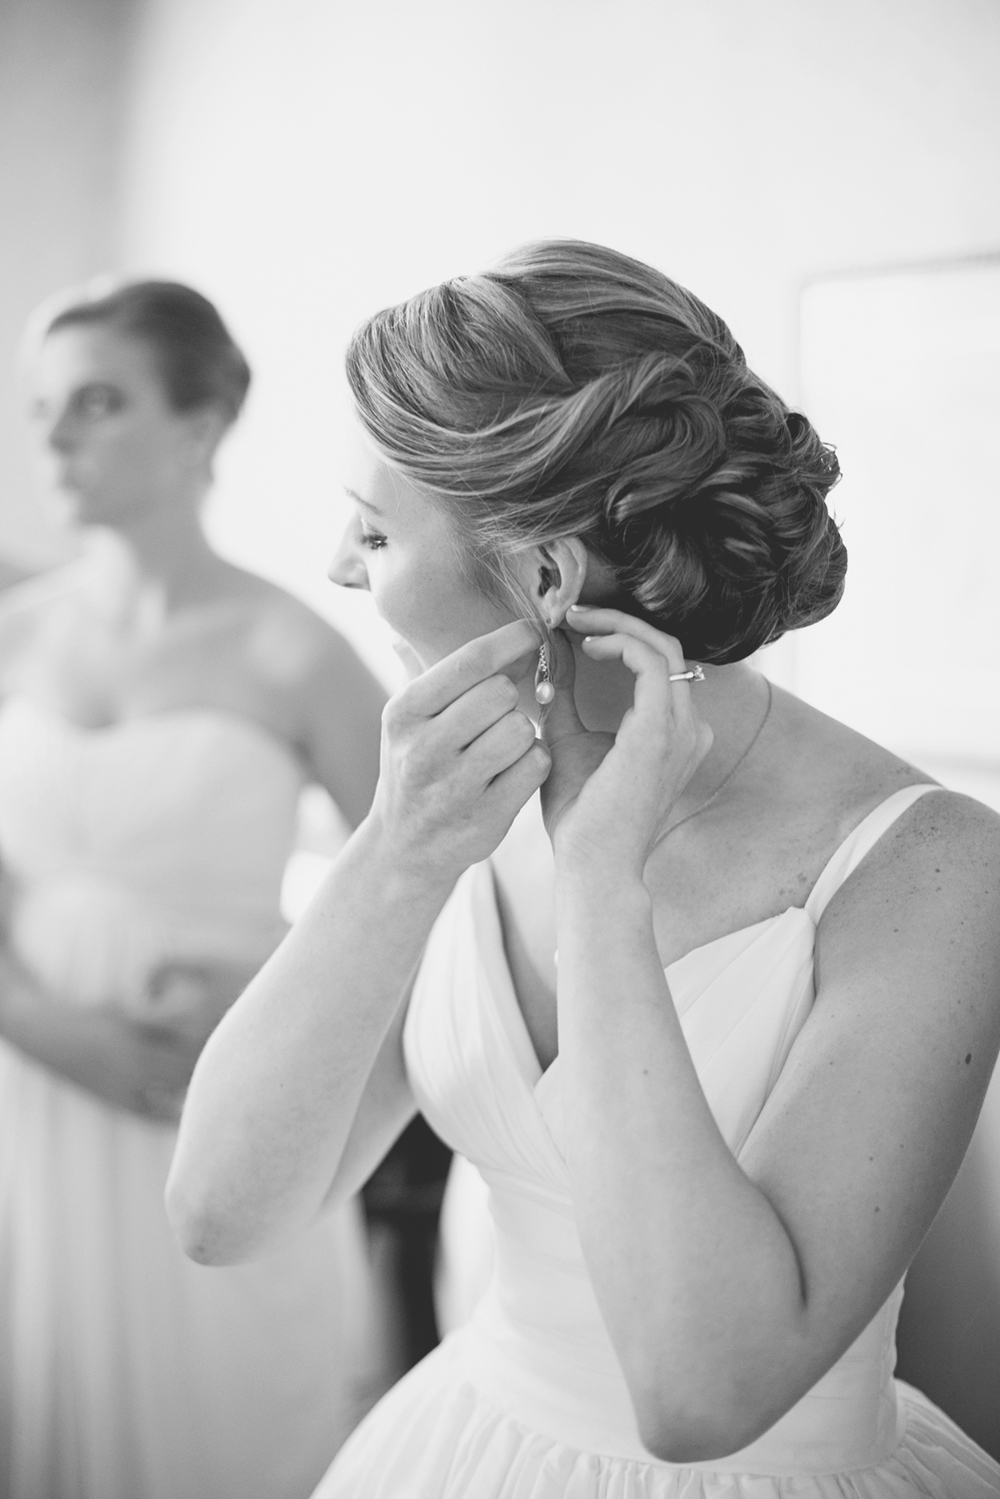 Trump National Golf Club Wedding | Washington, DC Wedding | Bride puts on her earrings in black and white